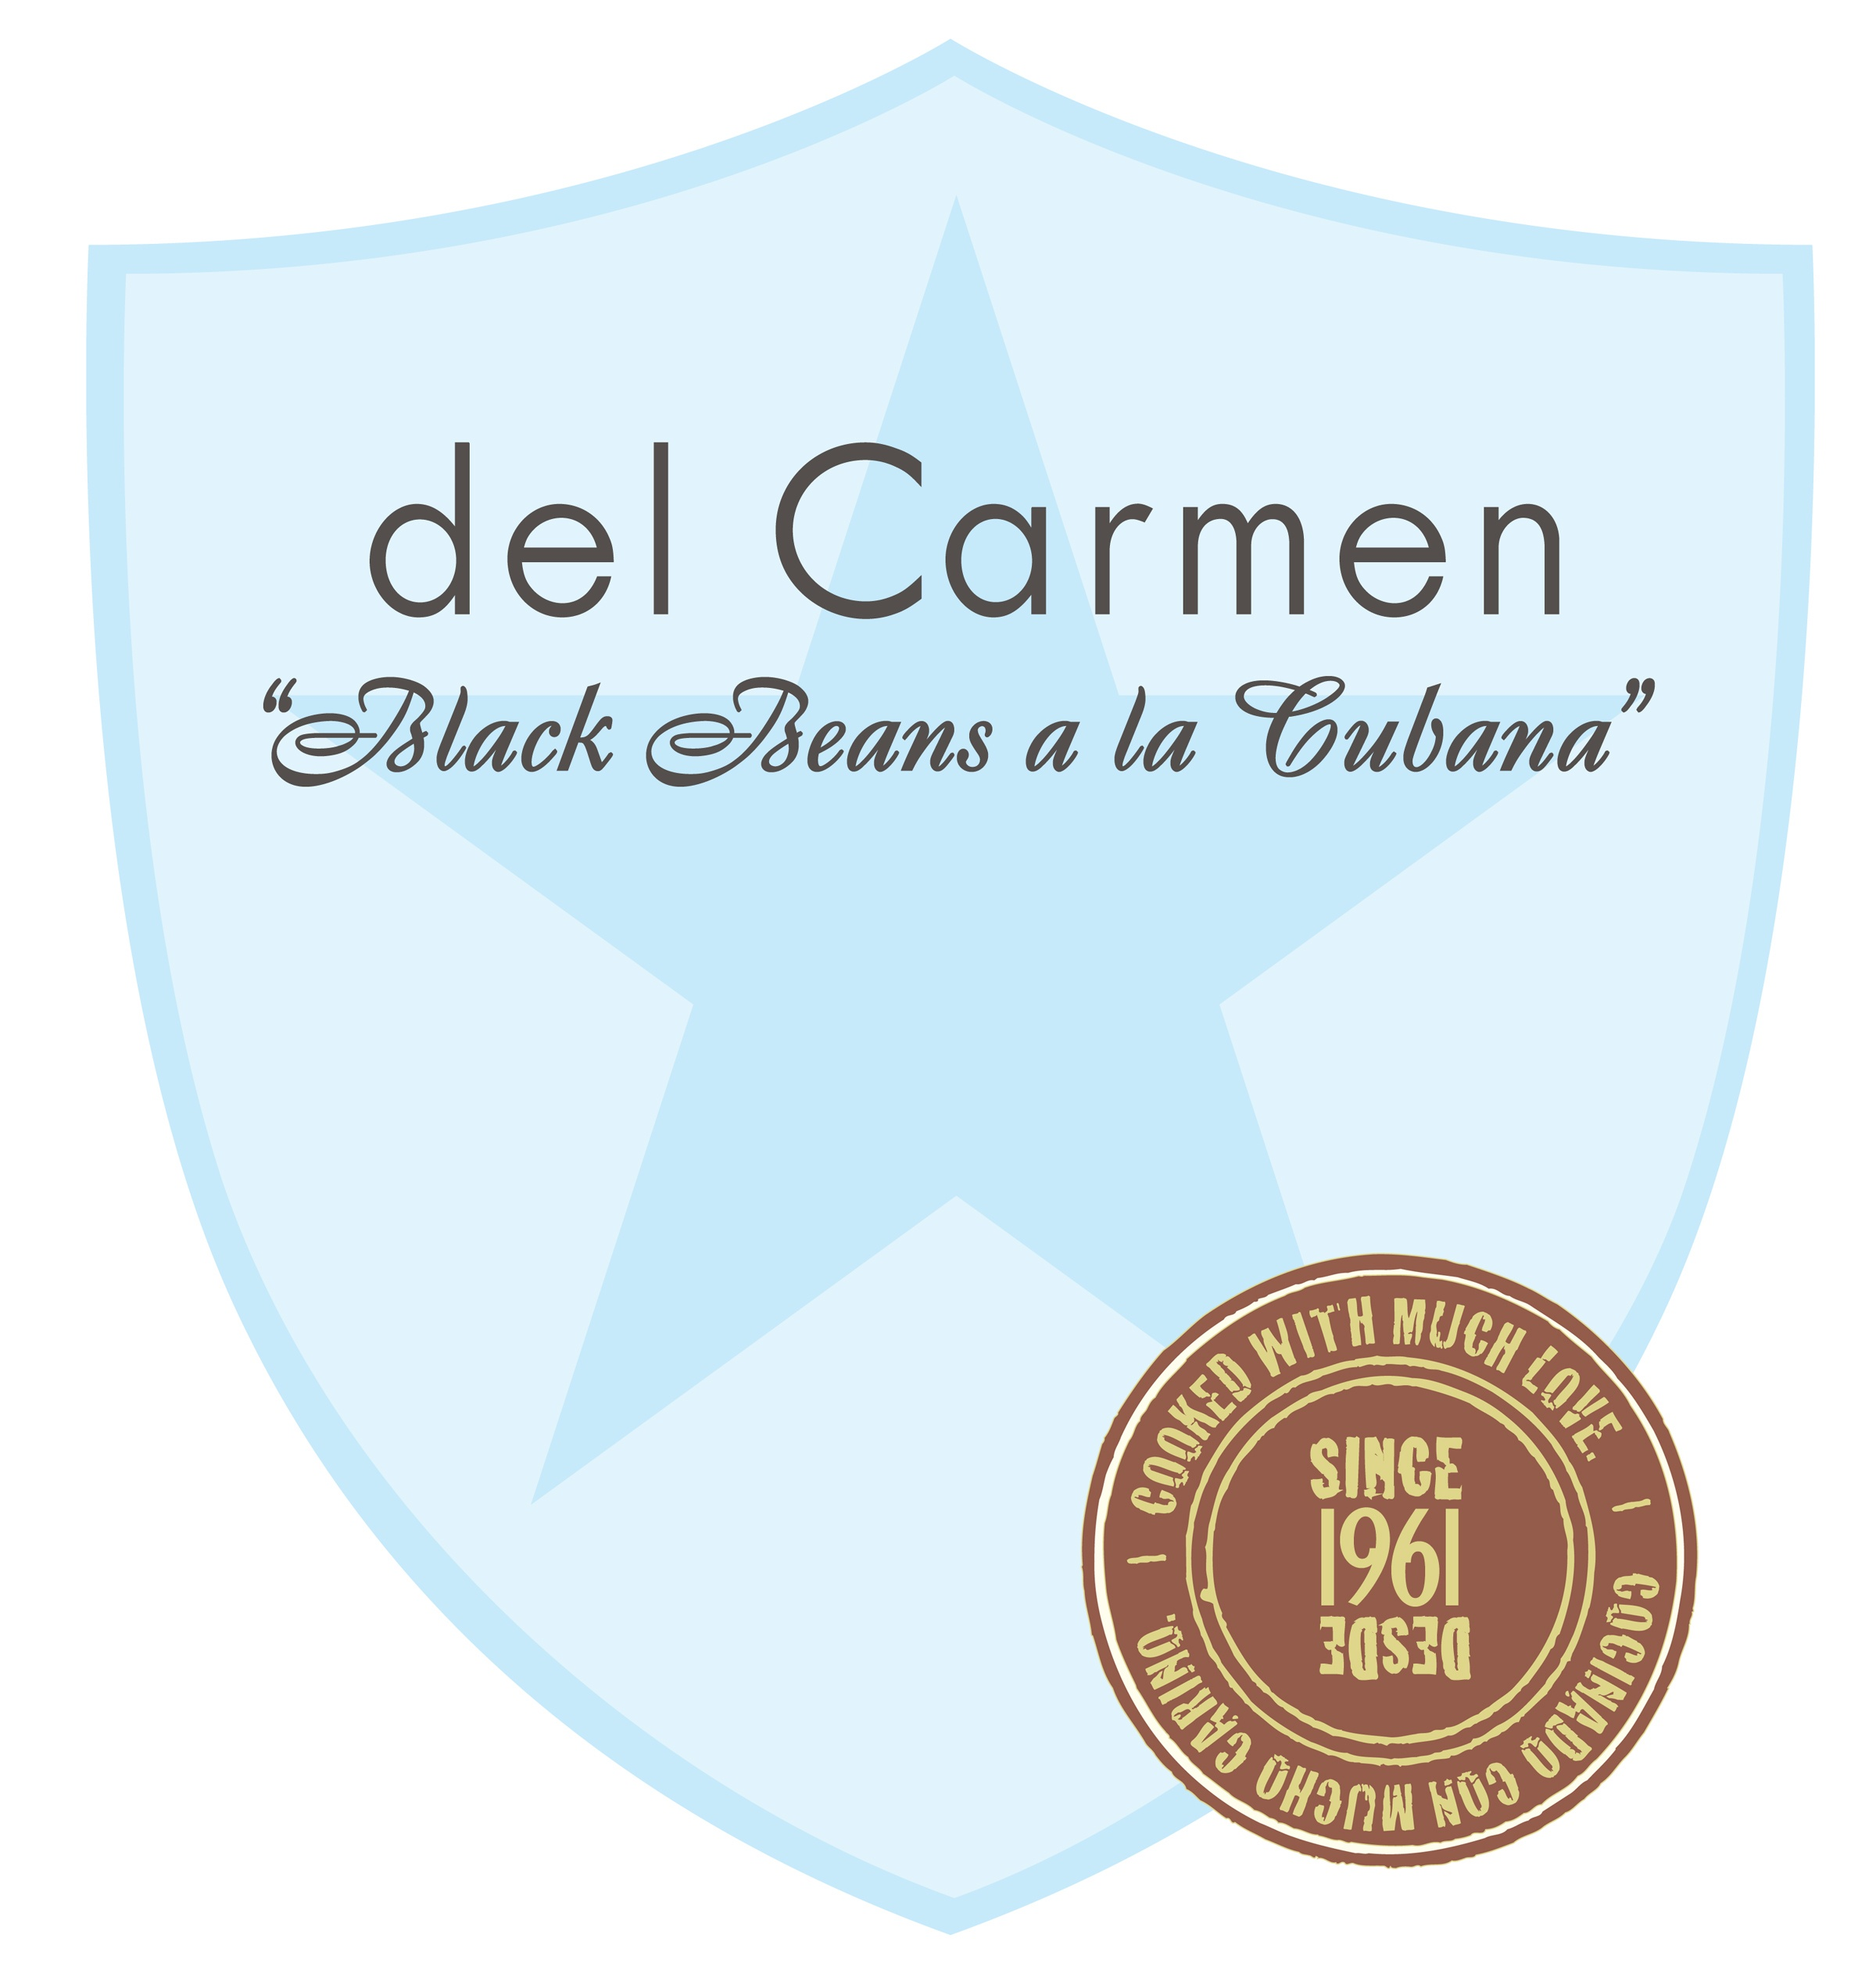 full_del carmen logo copy.jpg